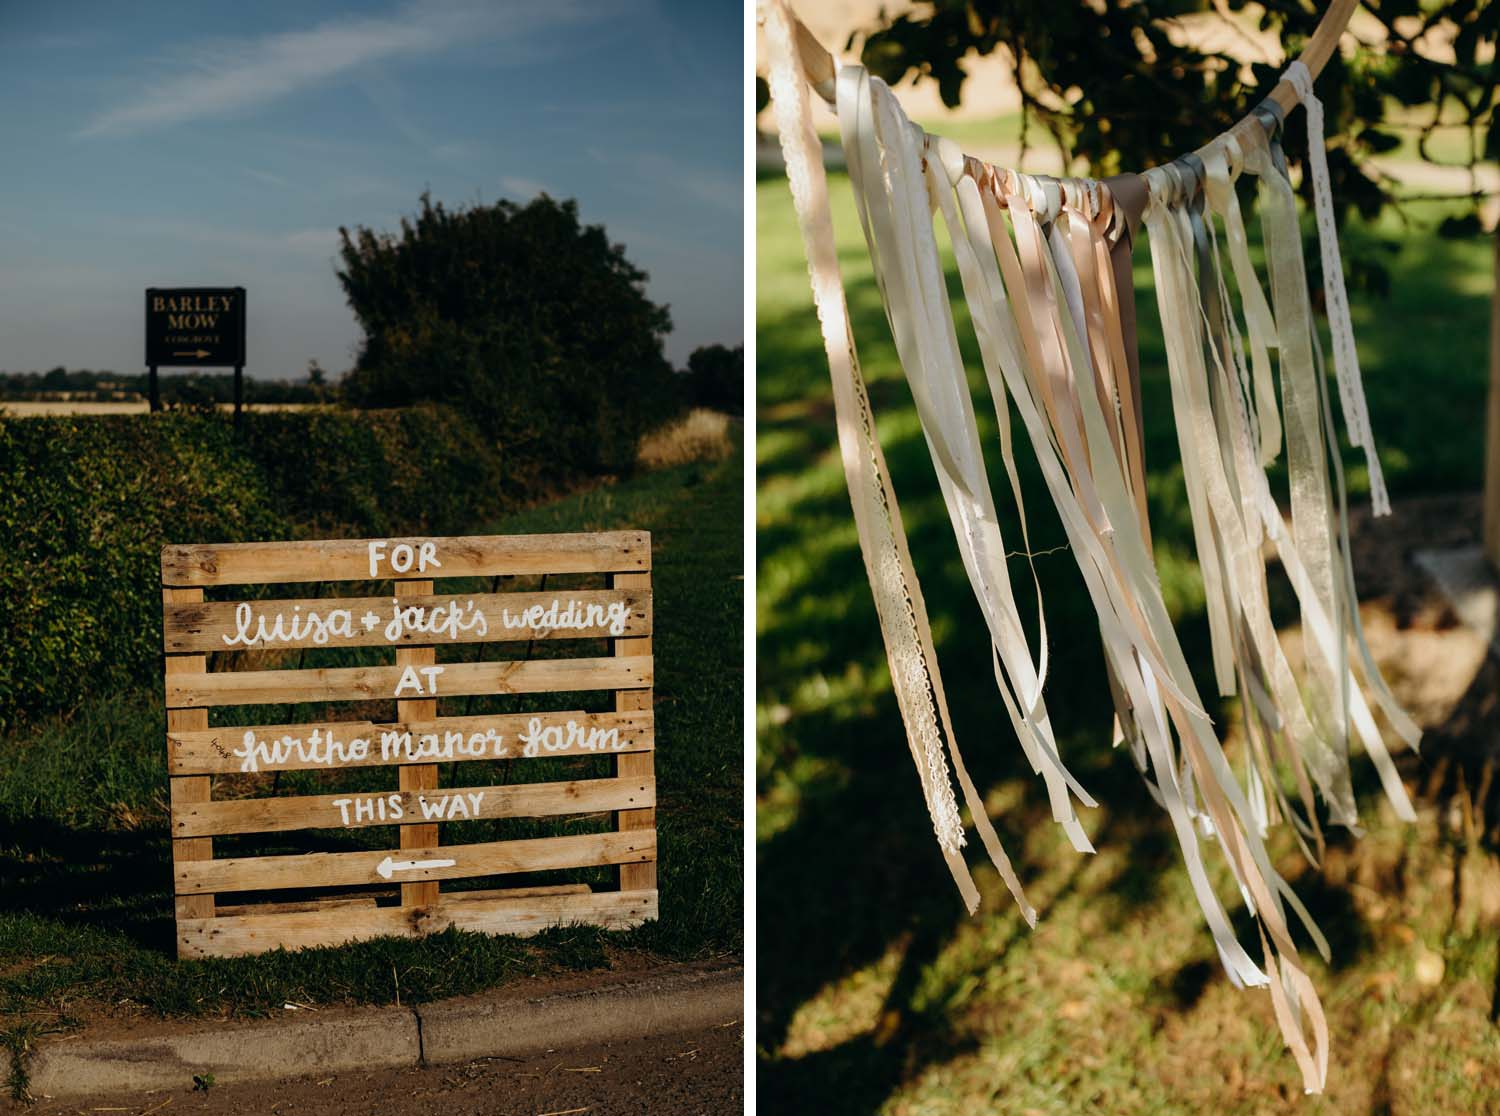 Handmade sign for wedding directions